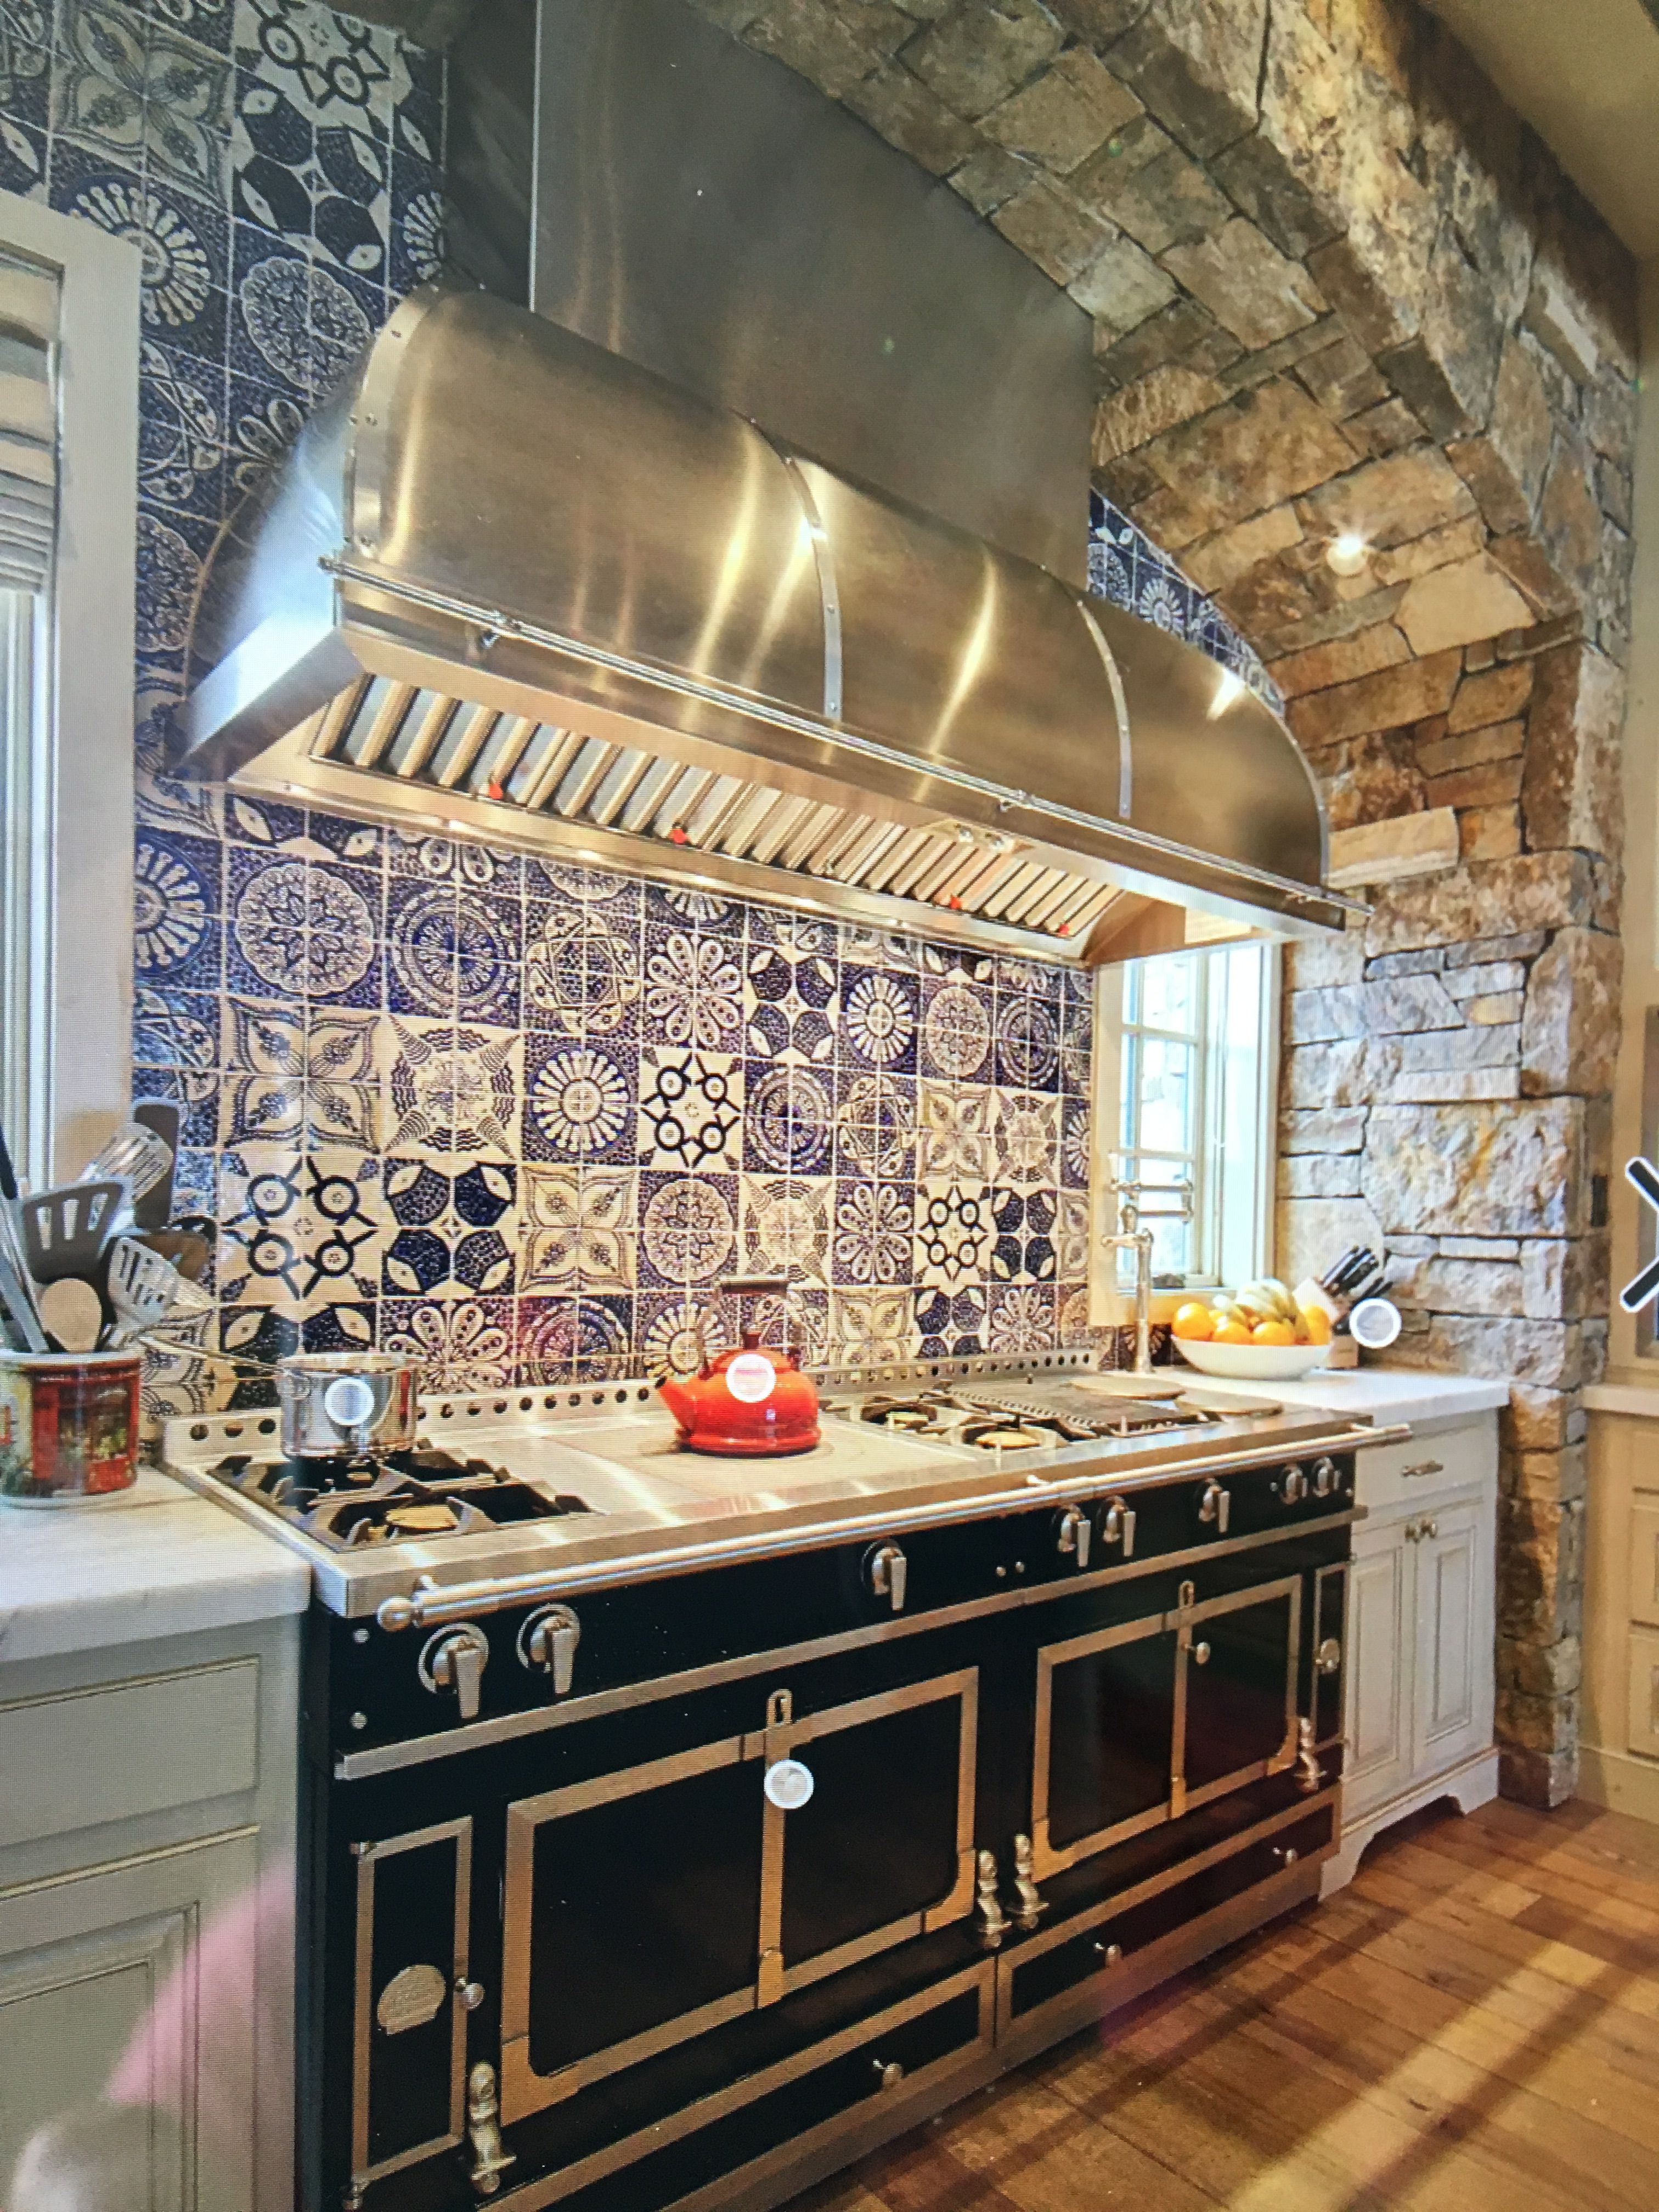 Pin By Lisa On Our Kitchen Renovation Country Kitchen Designs